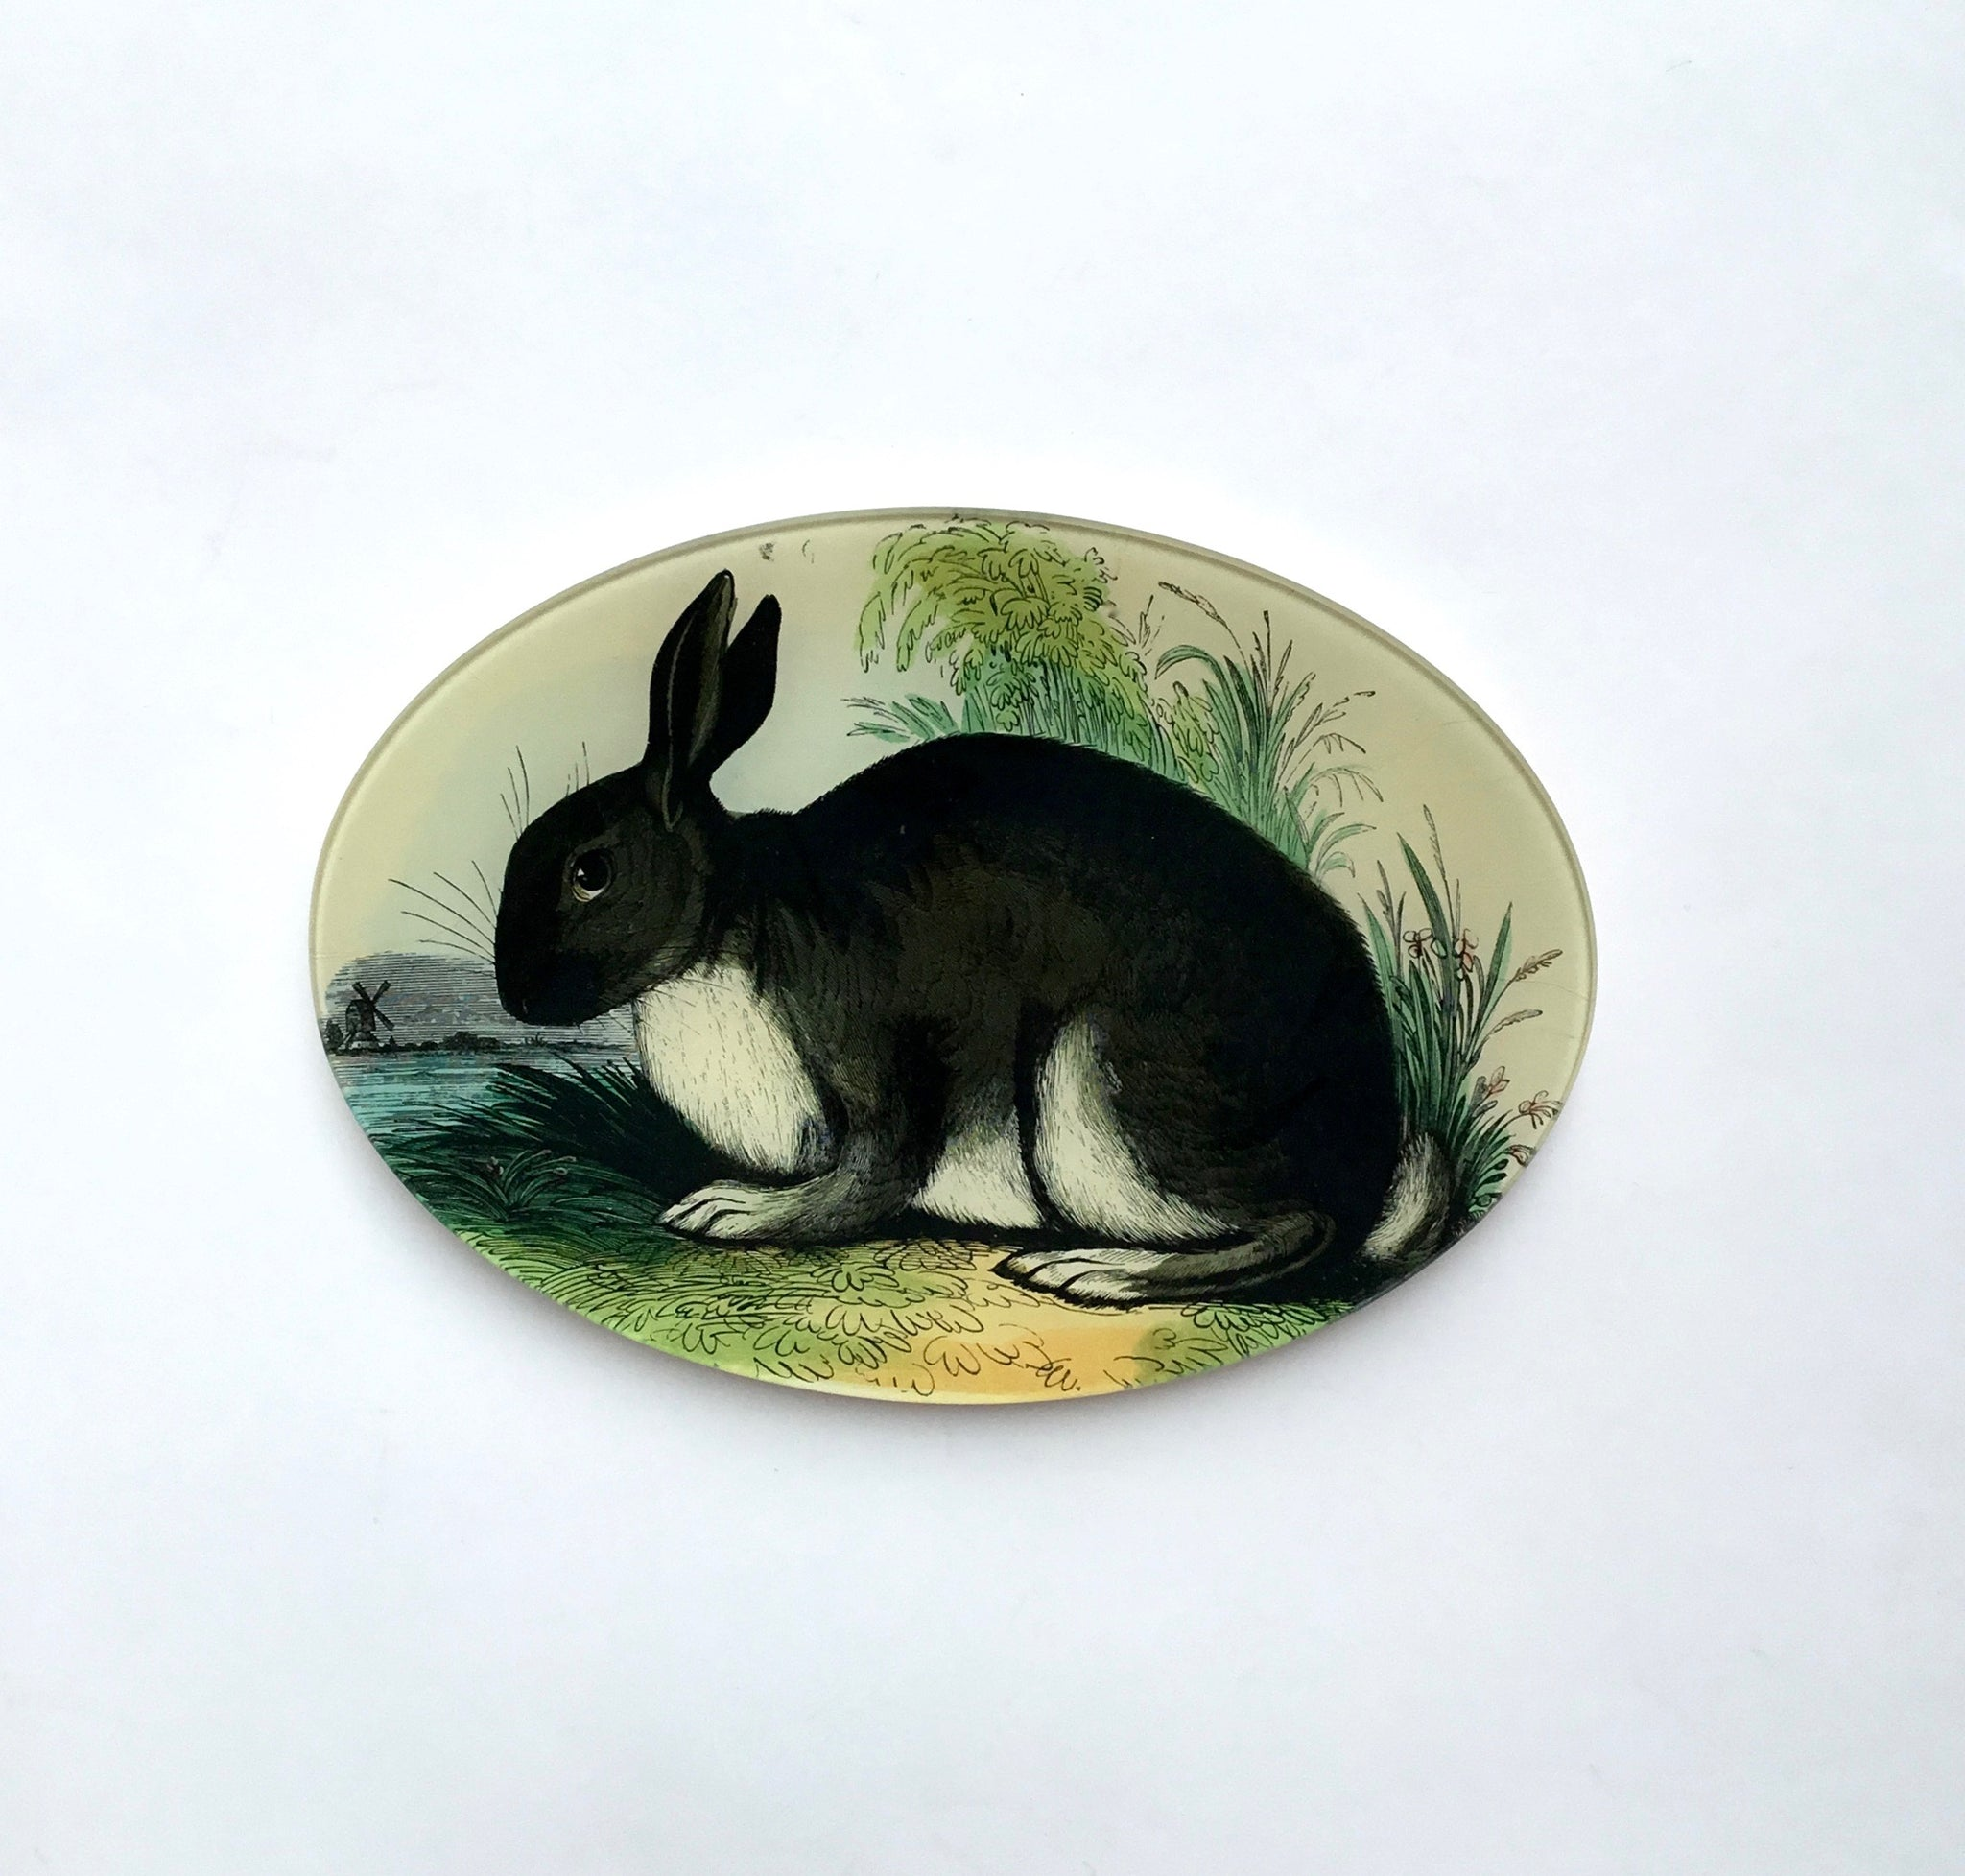 Oval Rabbit Plate by John Derian